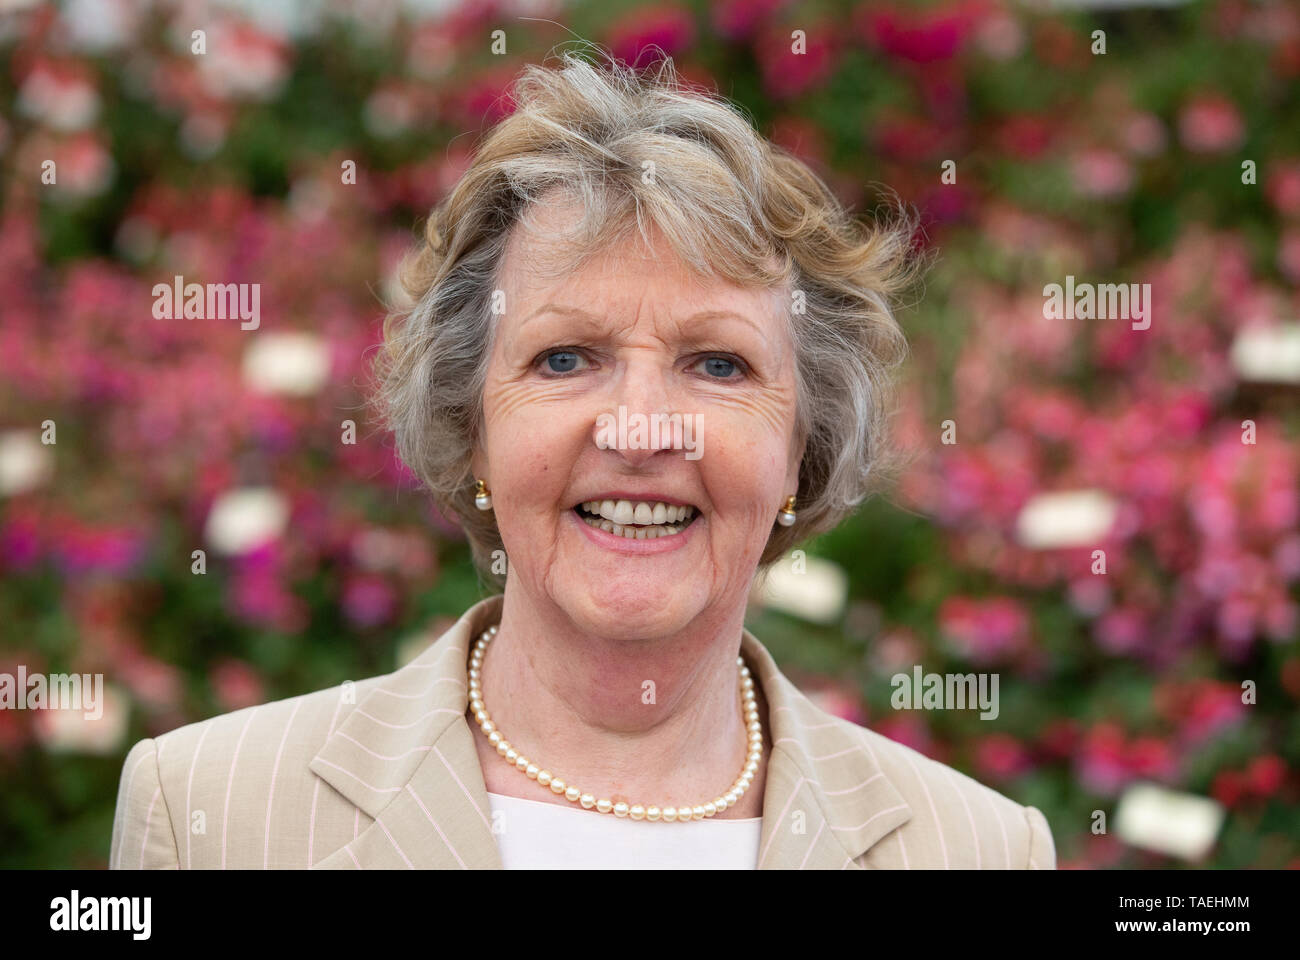 Stage and Television actress Penelope Keith at the RHS Chelsea Flower Show. She is best known for 'The Good Life' and 'To the Manor born'. - Stock Image